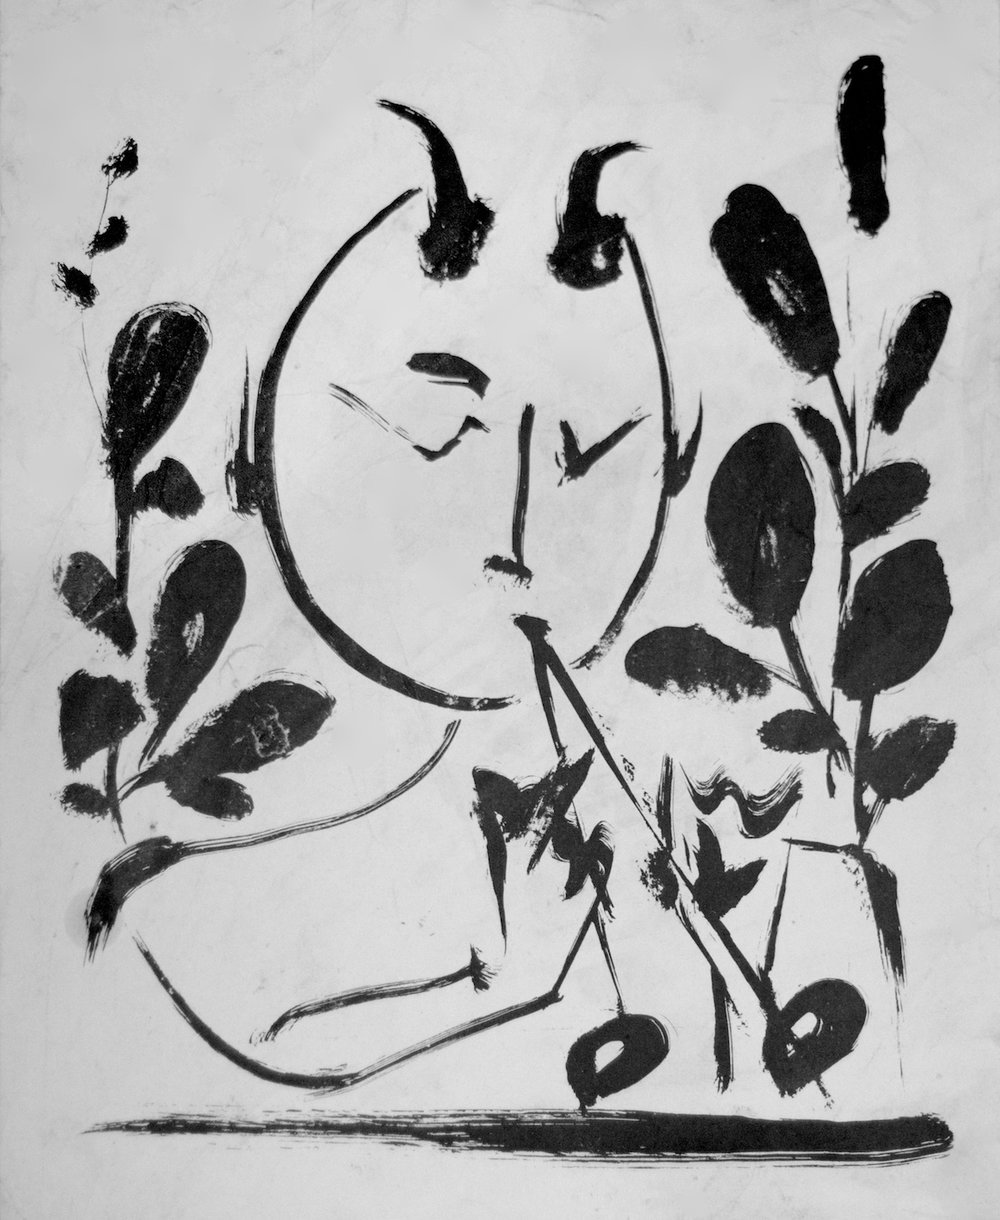 Pablo Picasso - Faun - Lithograph on paper - 1948